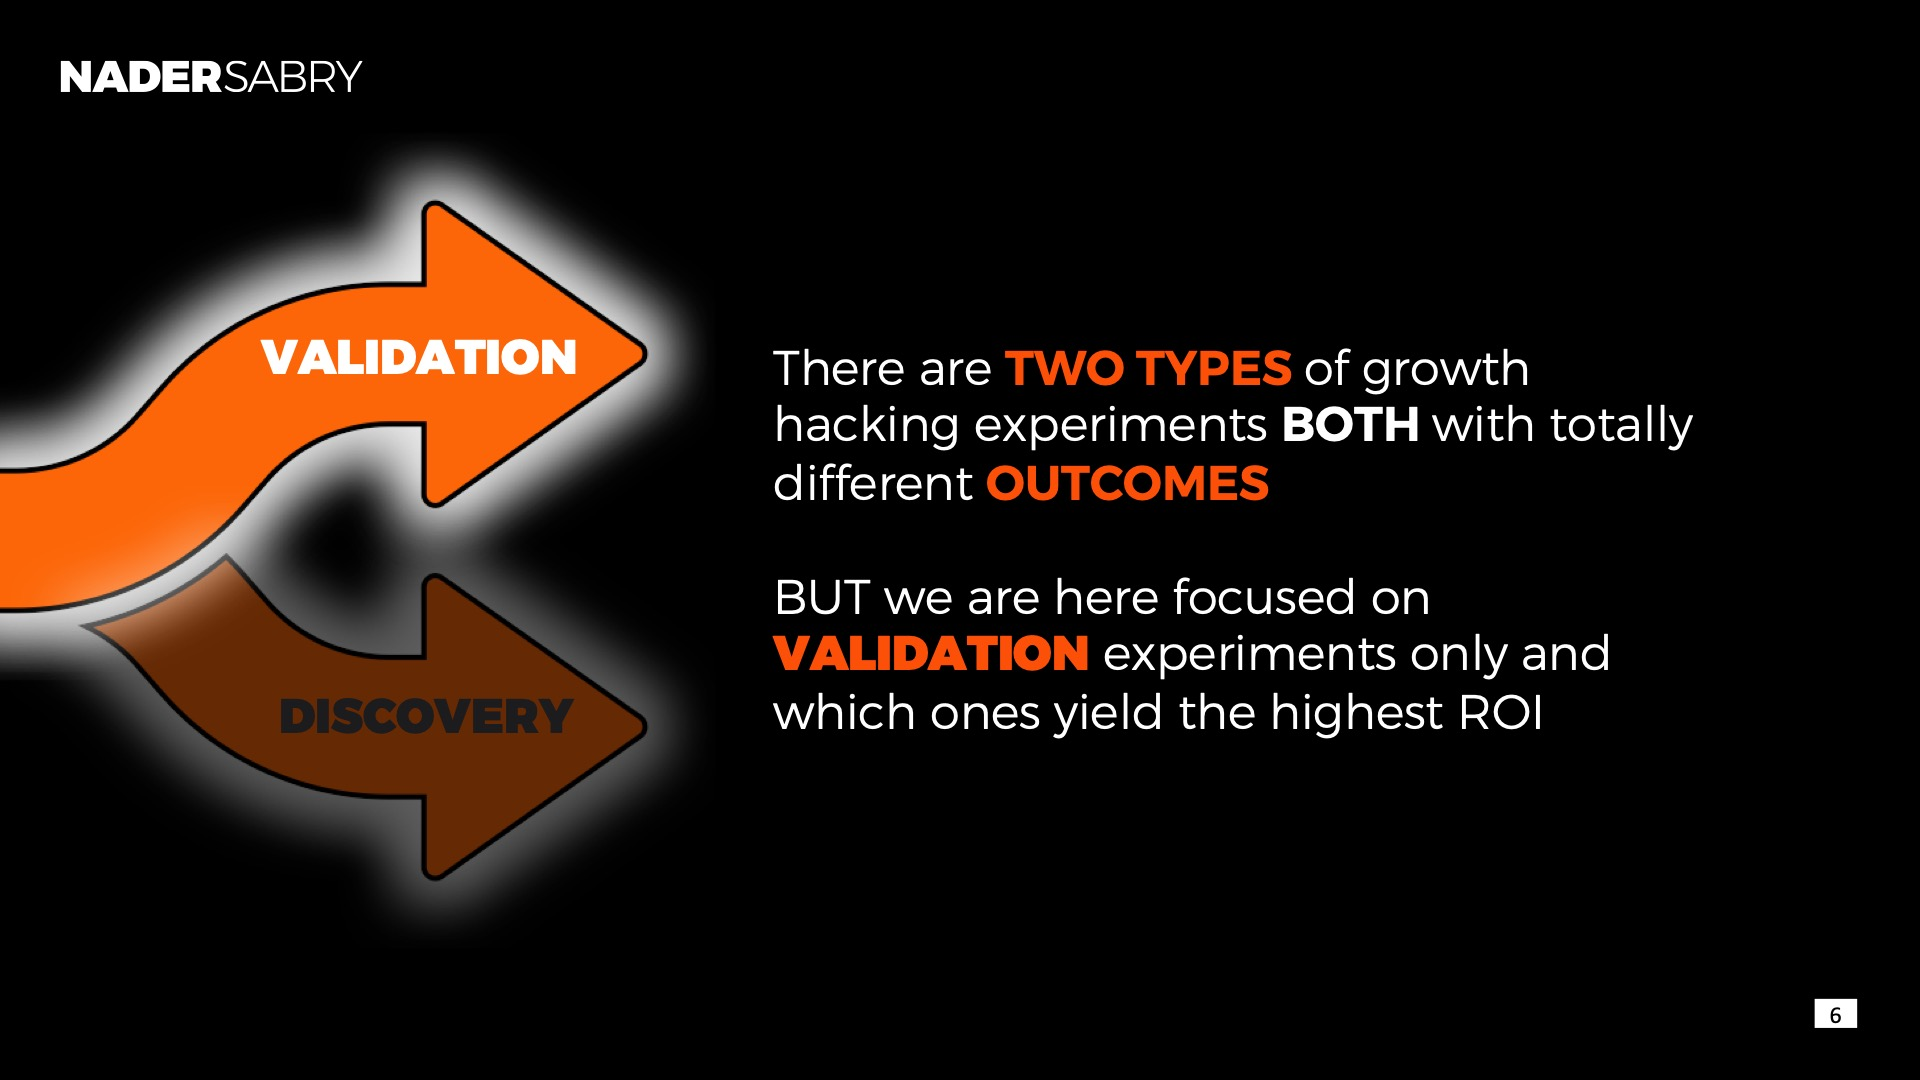 WHICH VALIDATION GROWTH HACKING EXPERIMENTS YIELD THE BEST RETURNS